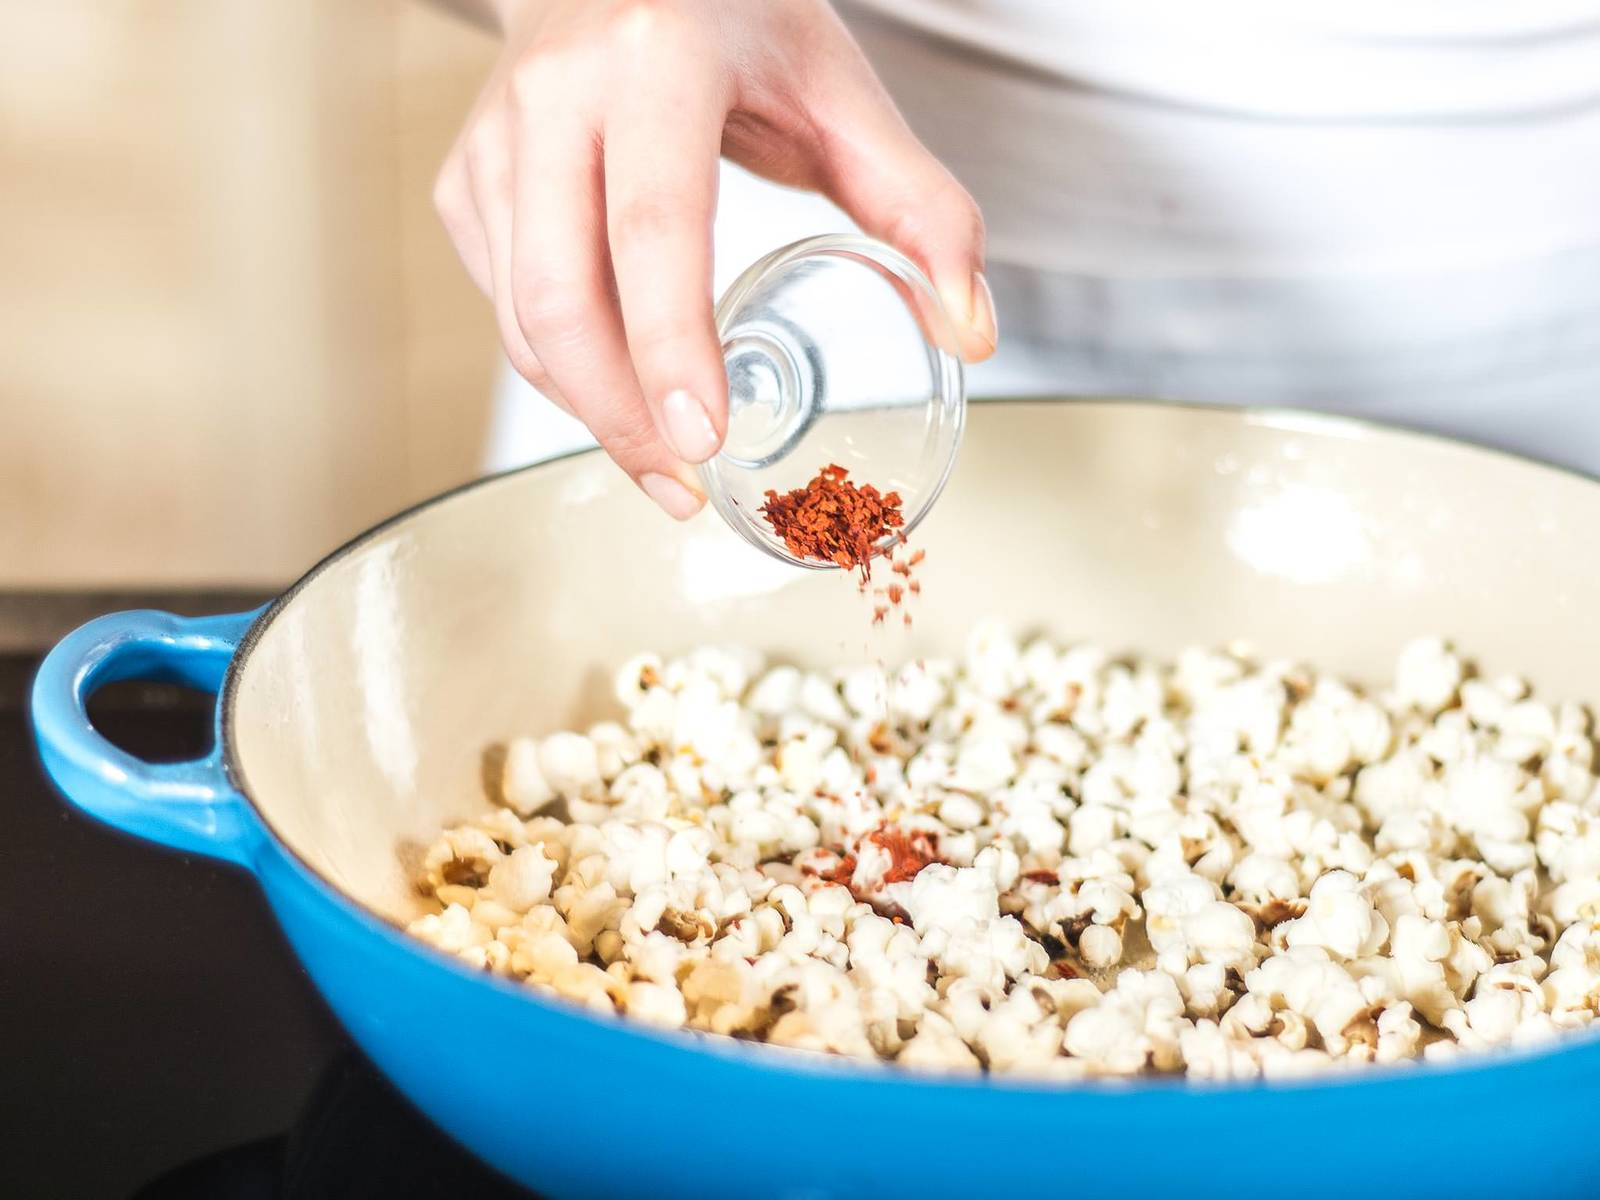 To make the spicy popcorn, heat vegetable oil, then add popping corn and allow to pop on medium heat with a closed lid. When finished, season the popcorn as desired with chili powder and salt.